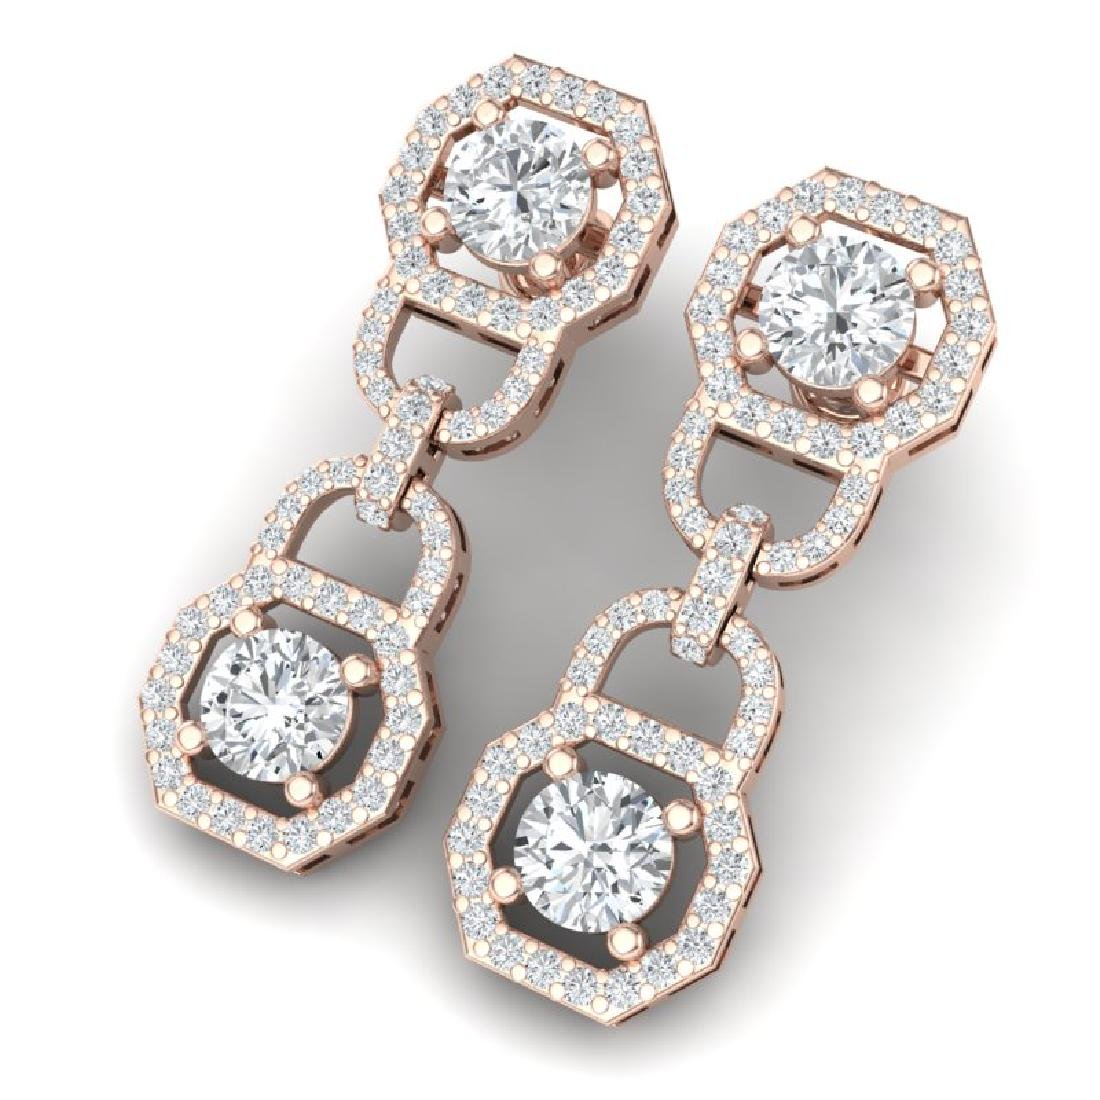 4 CTW Certified SI/I Diamond Halo Earrings 18K Rose